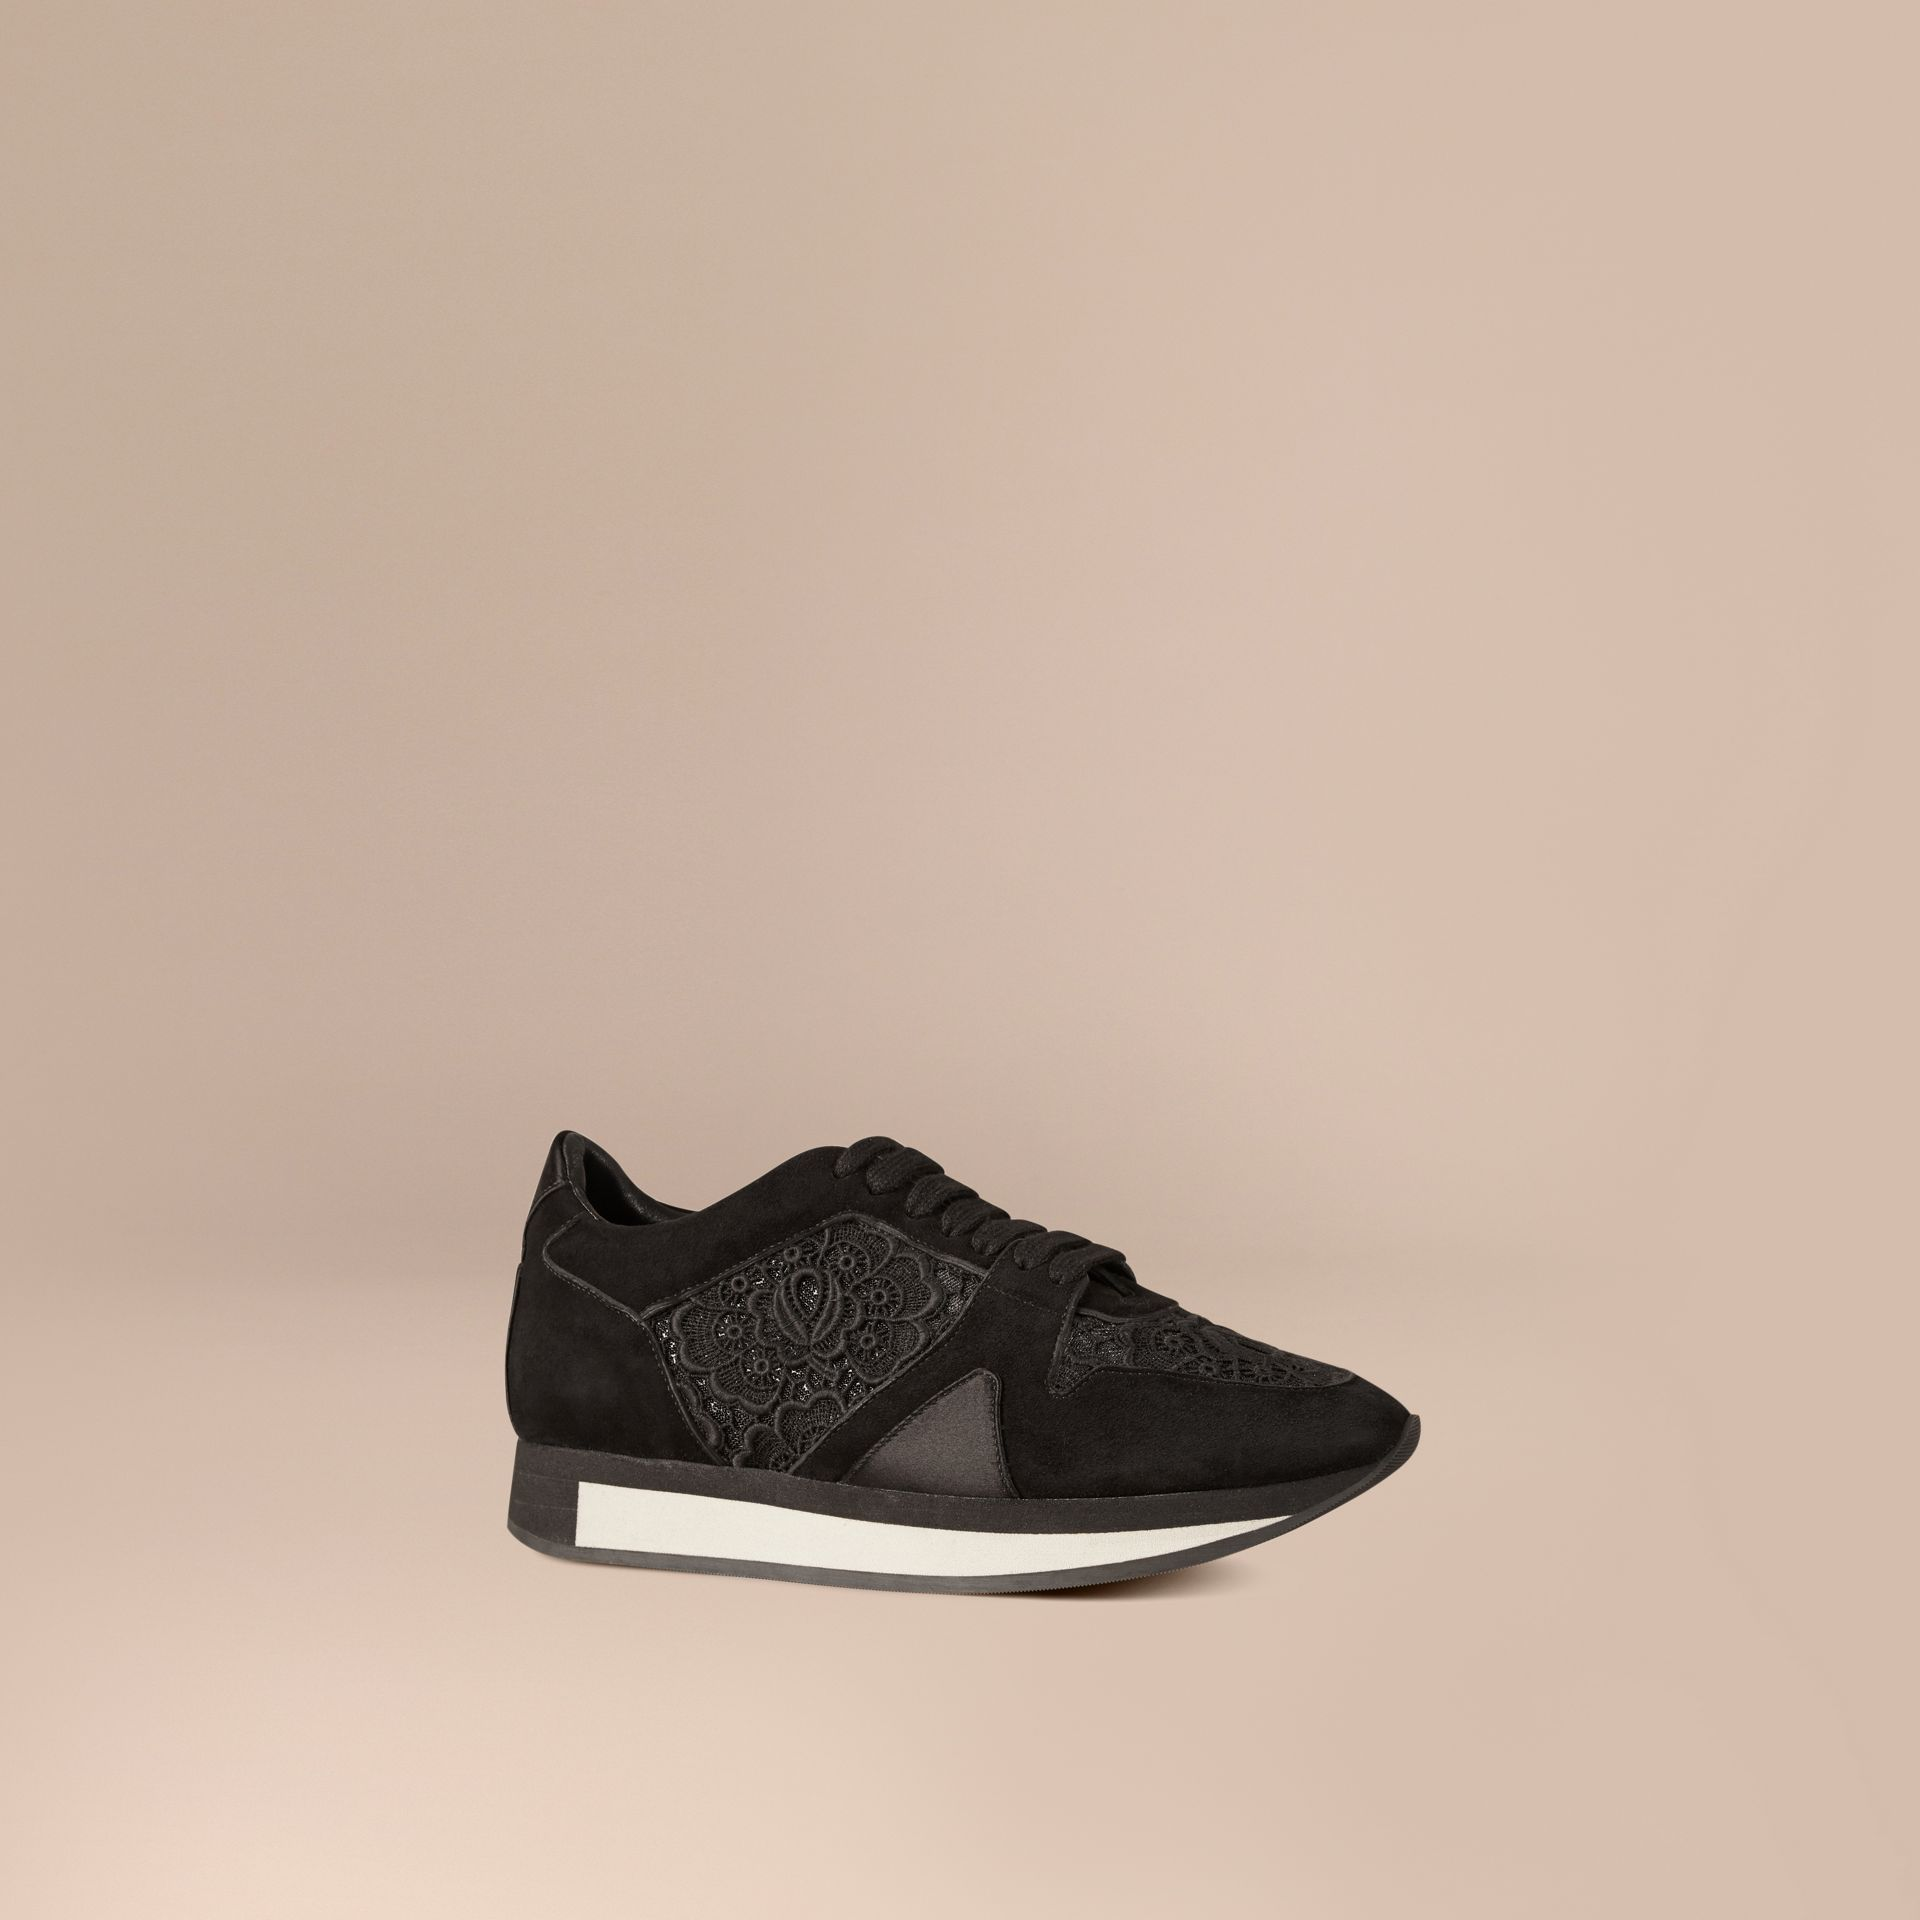 Black The Field Sneaker in Lace and Suede - gallery image 1